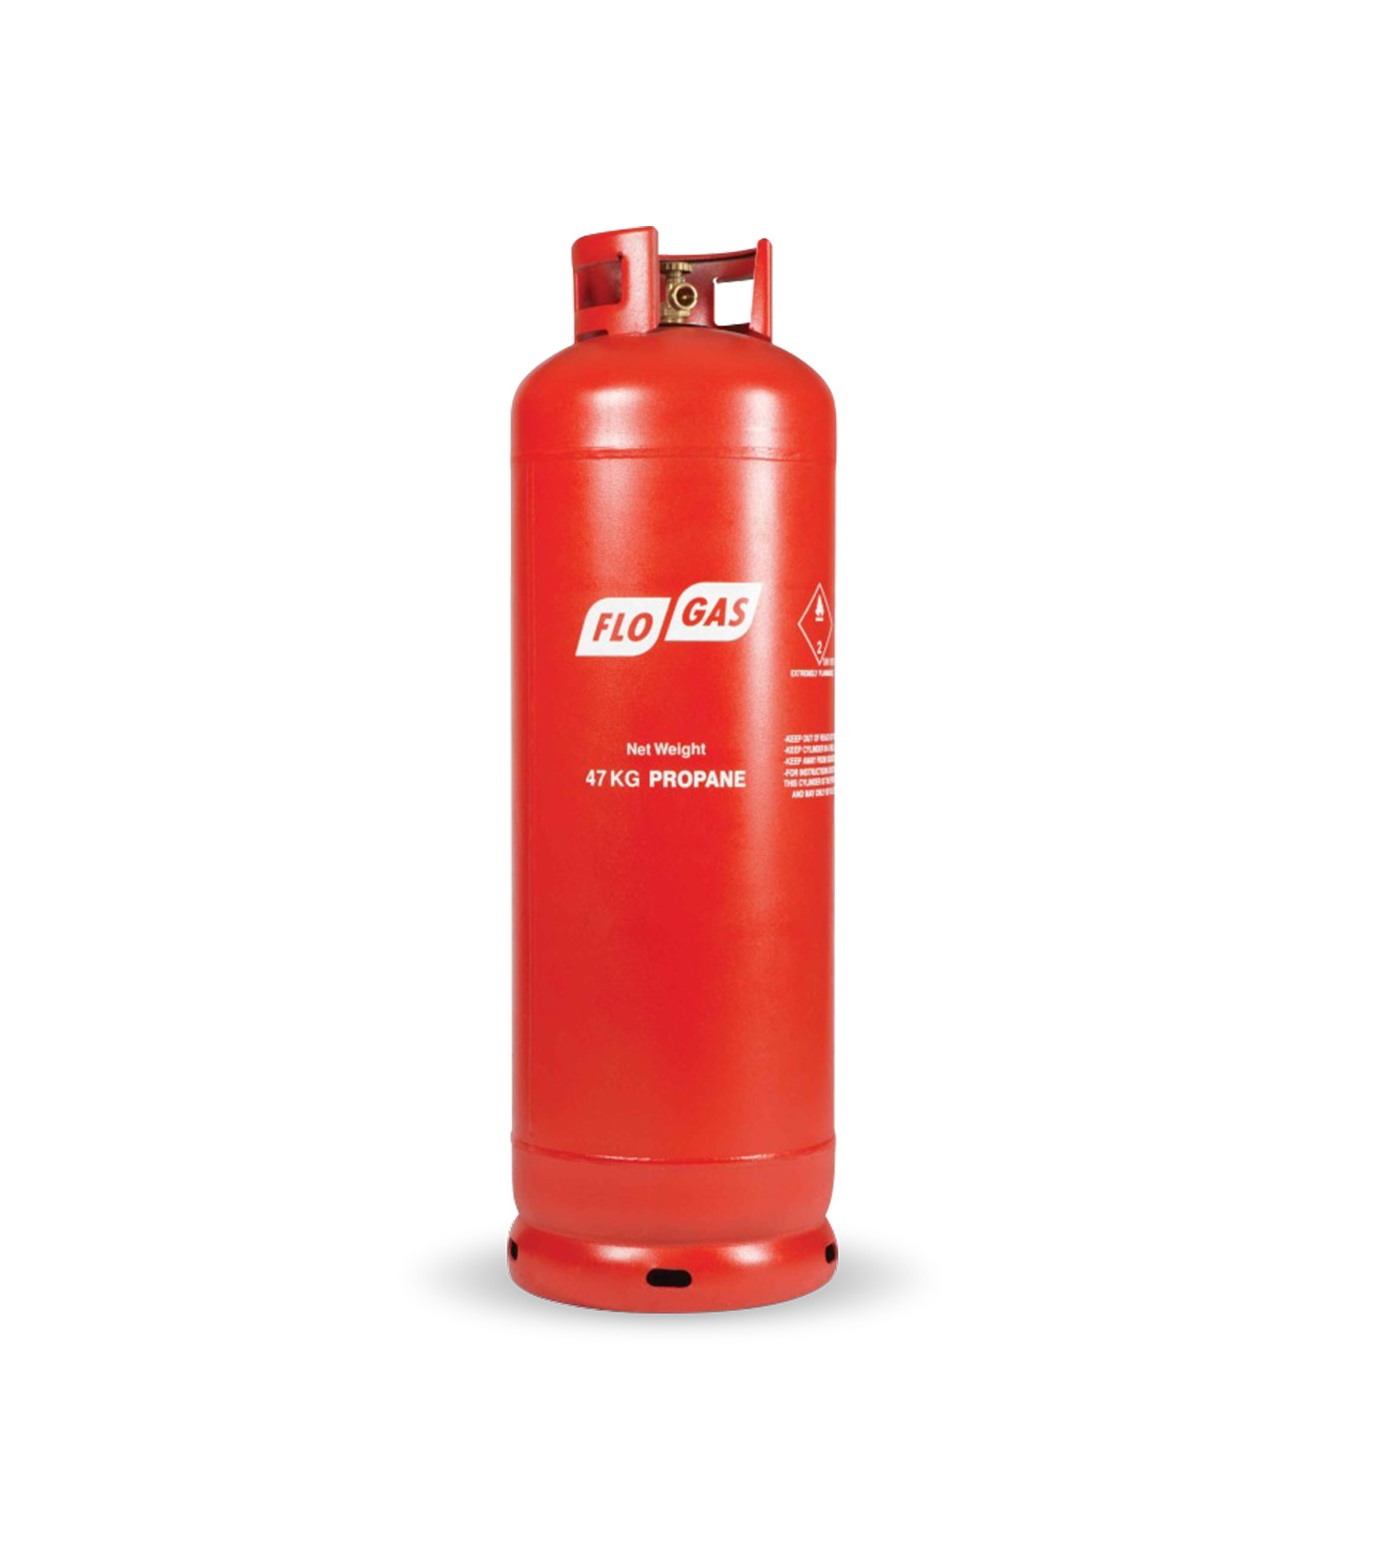 FloGas 47kg Propane Gas Bottle